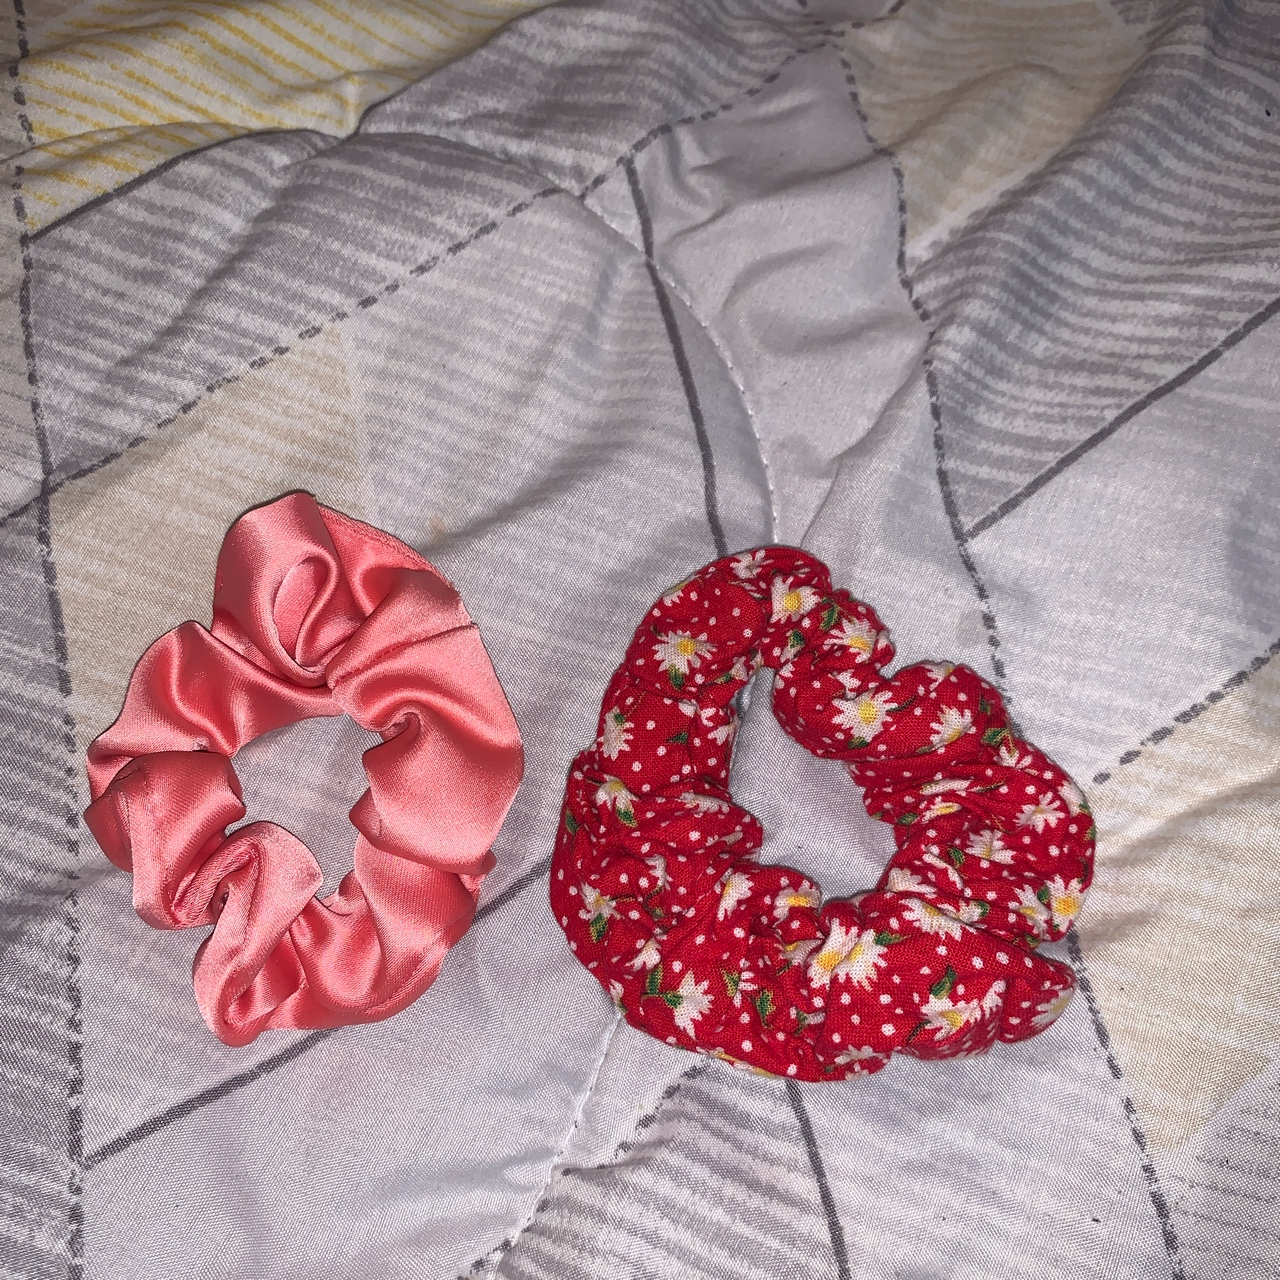 Product Image 1 - Scrunchie set. All four scrunchies